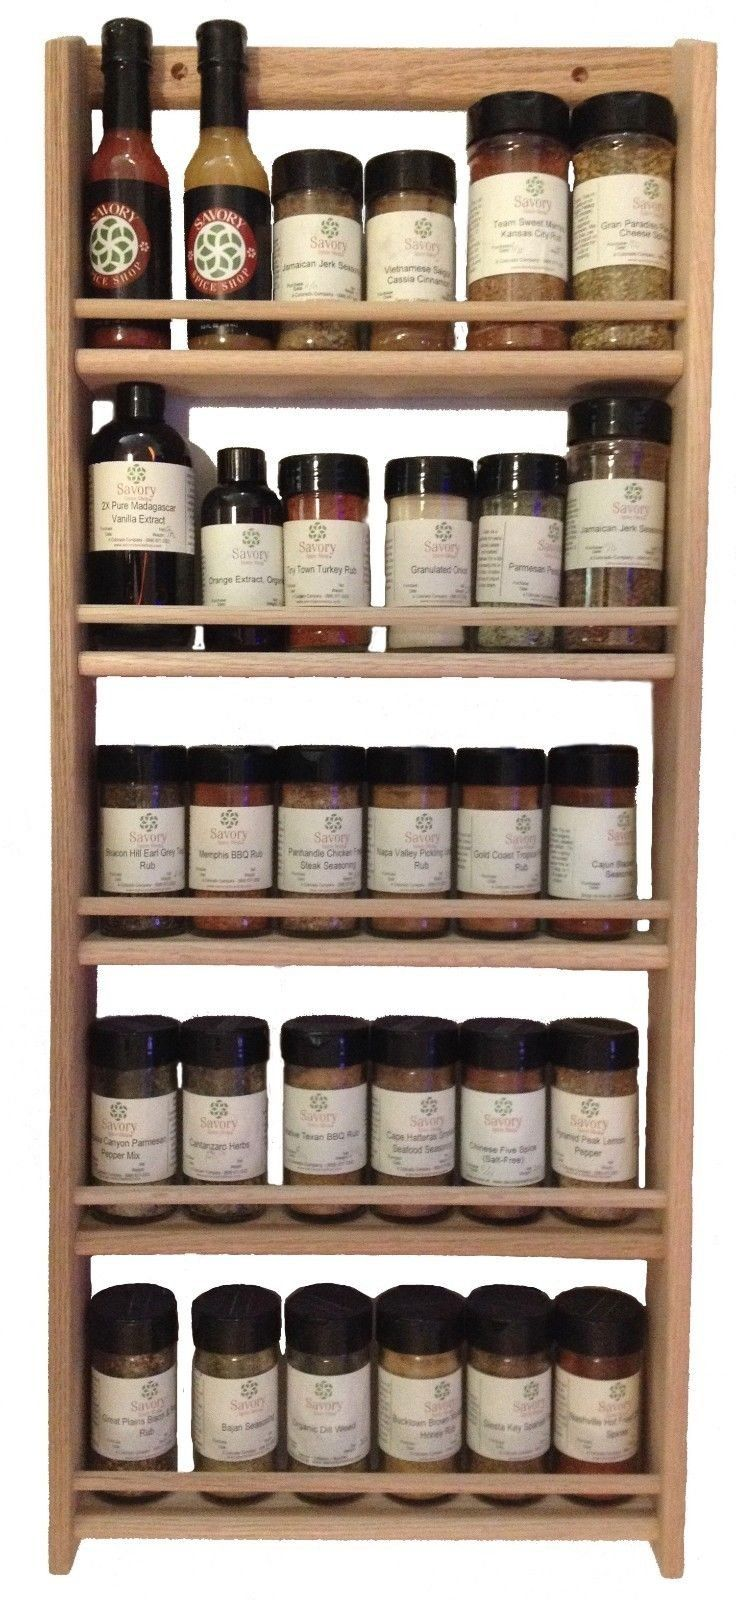 "Wood Spice Rack For Wall Pleasing Solid Oak Wood Spice Rack  3275""h X 1375 ""w  Wall Mount Wooden Review"